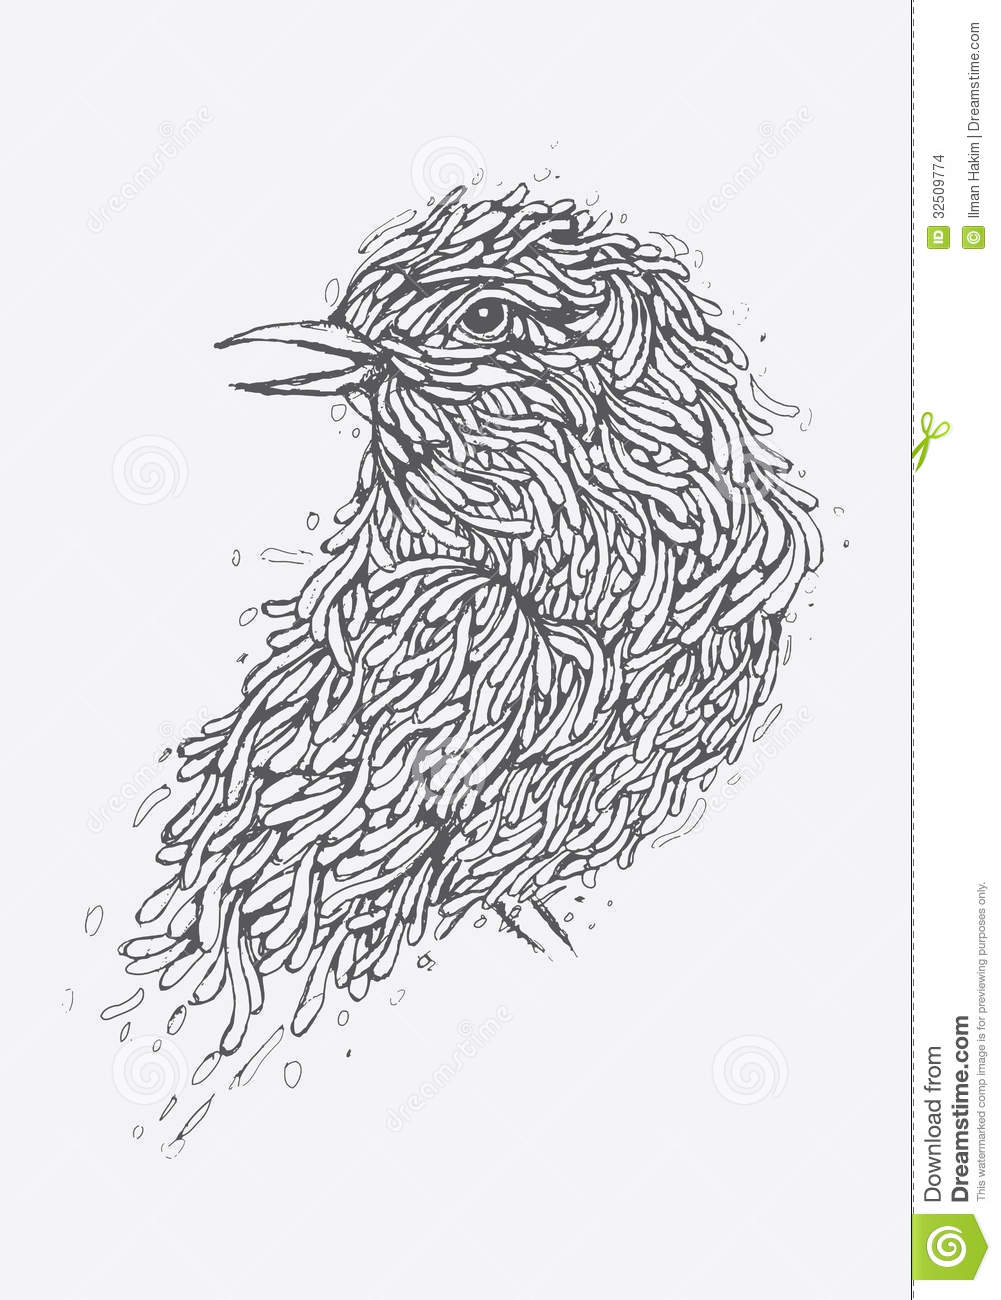 Line Art Illustration Style : Bird illustration stock images image